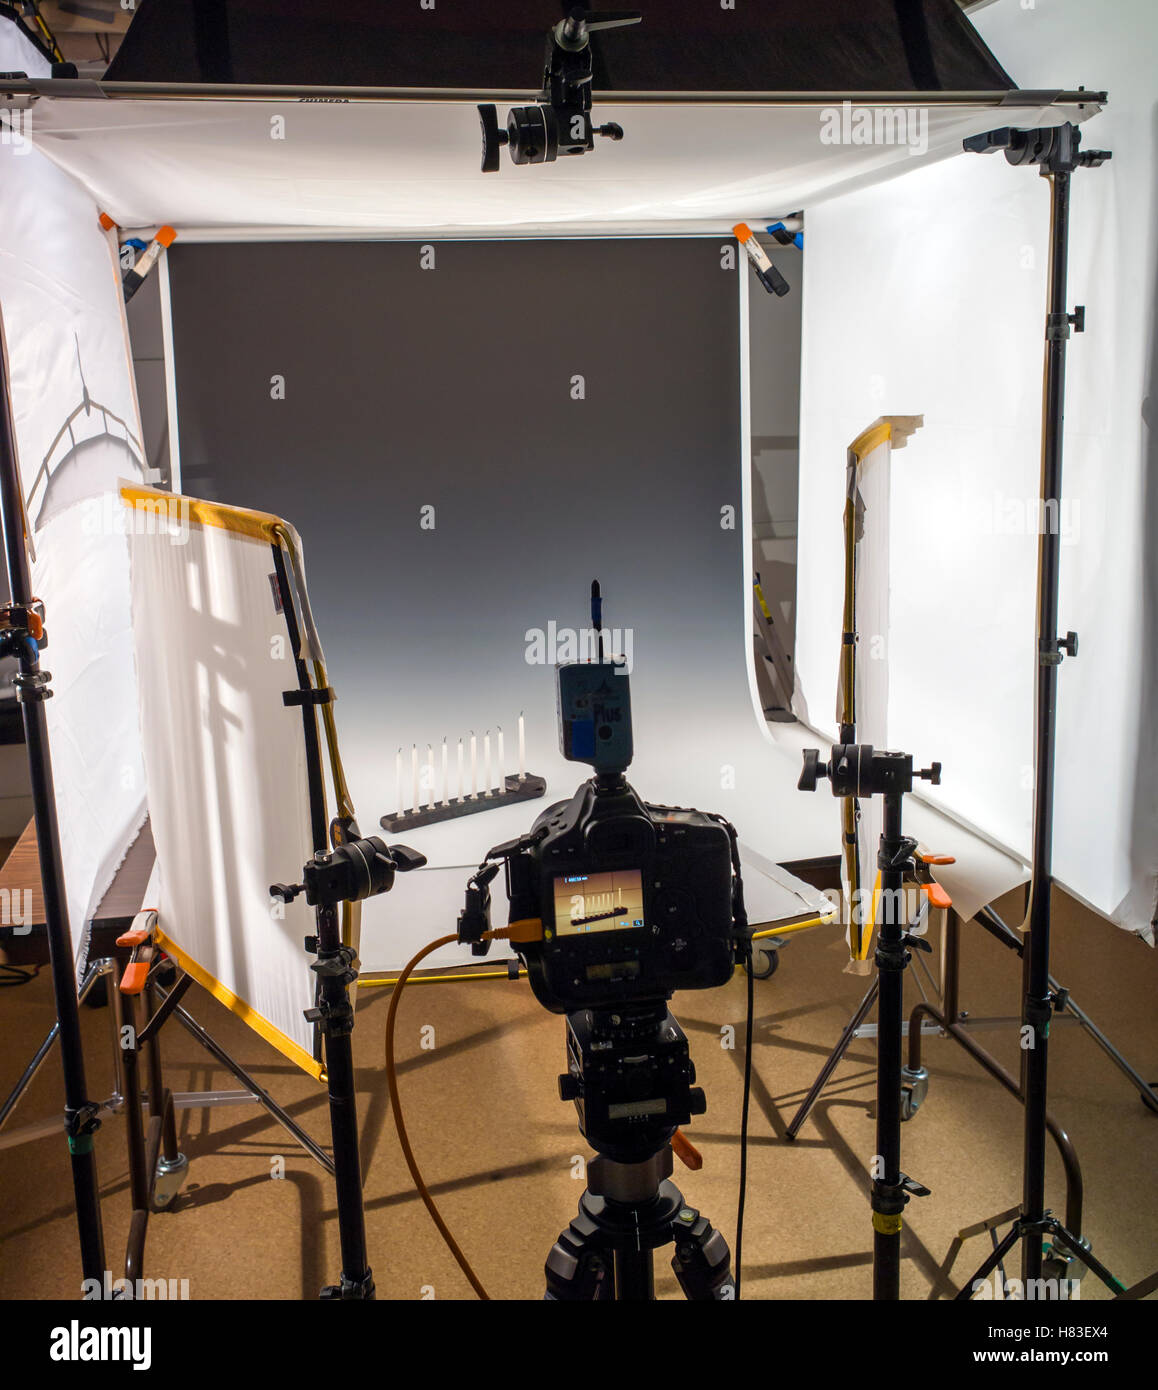 Lighting and camera equipment in a commercial photography studio lighting and camera equipment in a commercial photography studio aloadofball Images